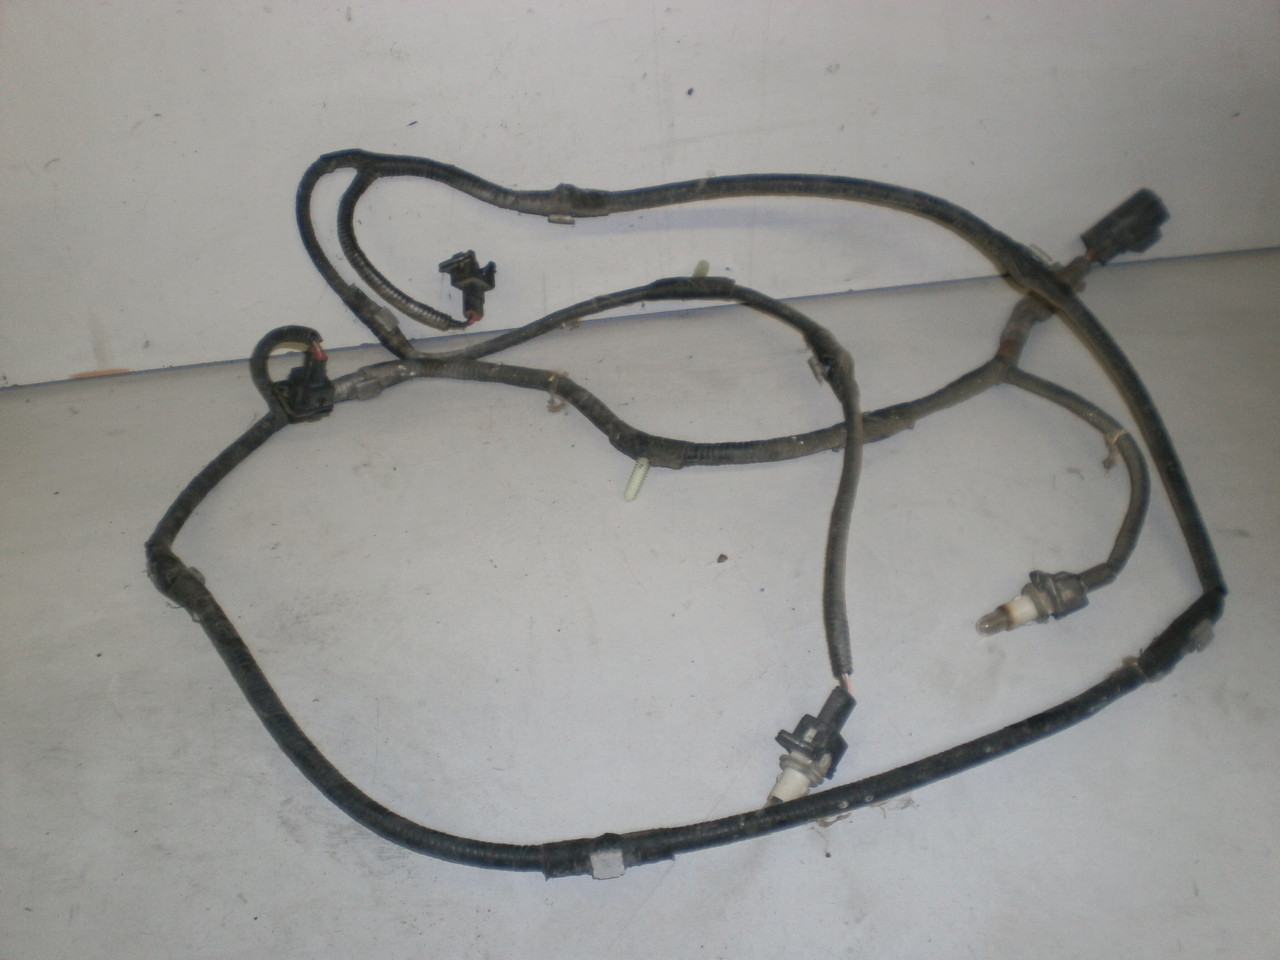 medium resolution of 2000 2002 jaguar s type front bumper wire harness price 54 98 image 1